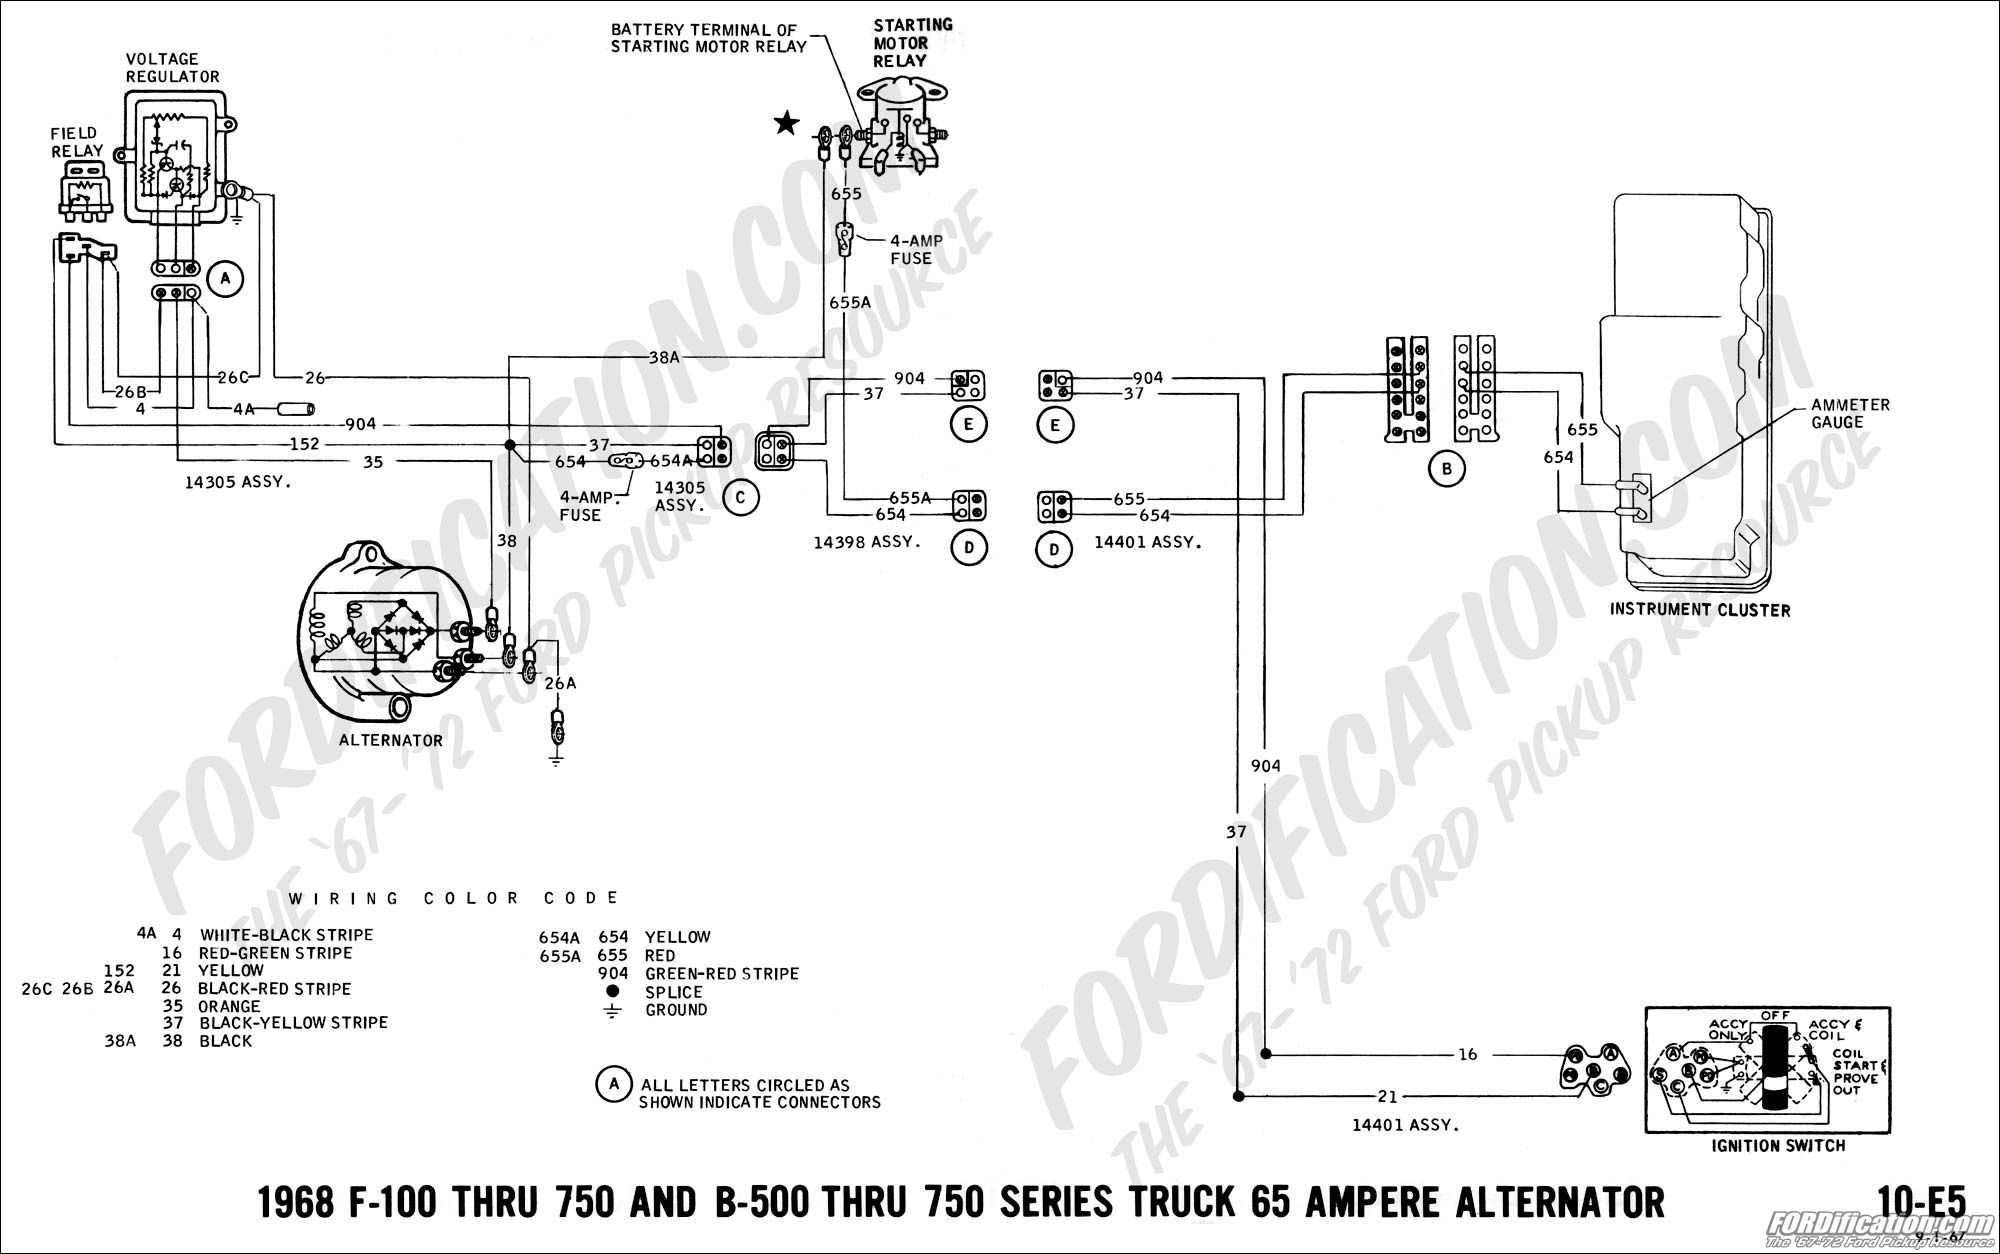 68 ford alternator wiring diagram 76 ford f150 pinterest ford rh pinterest  com Wiring-Diagram Internal Regulator Alternator 1-Wire Alternator Wiring  Diagram